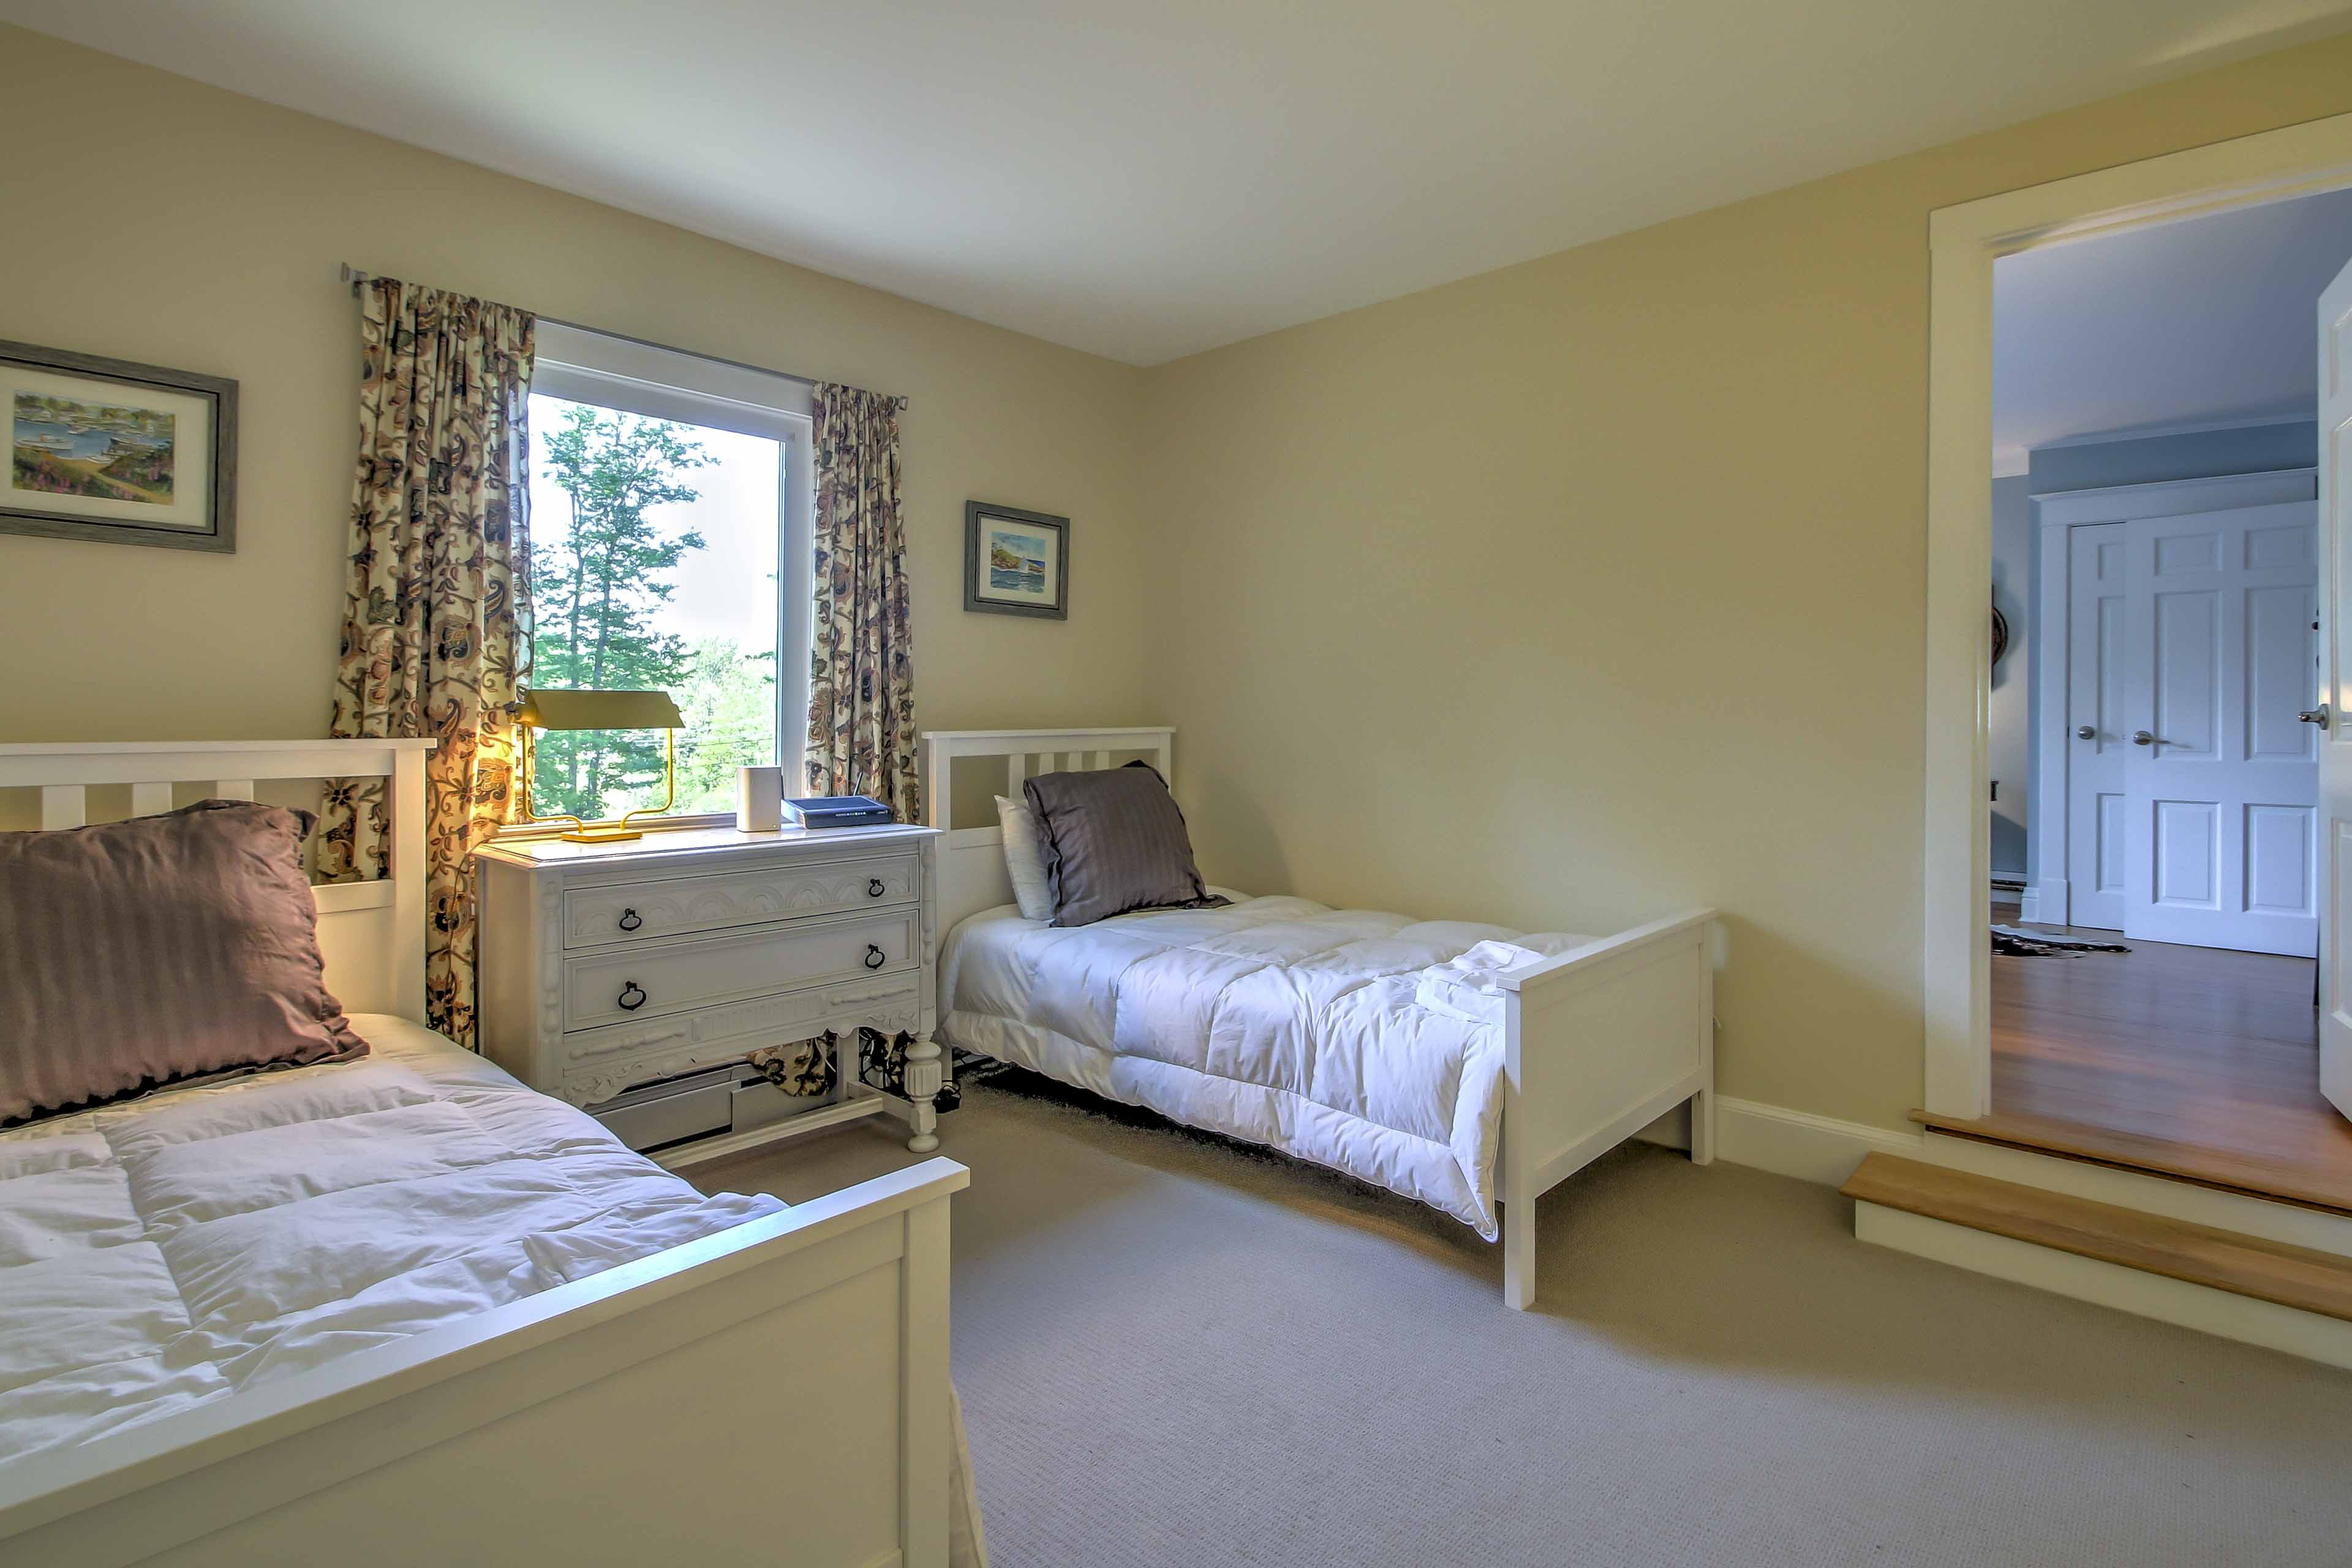 Siblings or friends will love sharing this room with 2 twin beds.